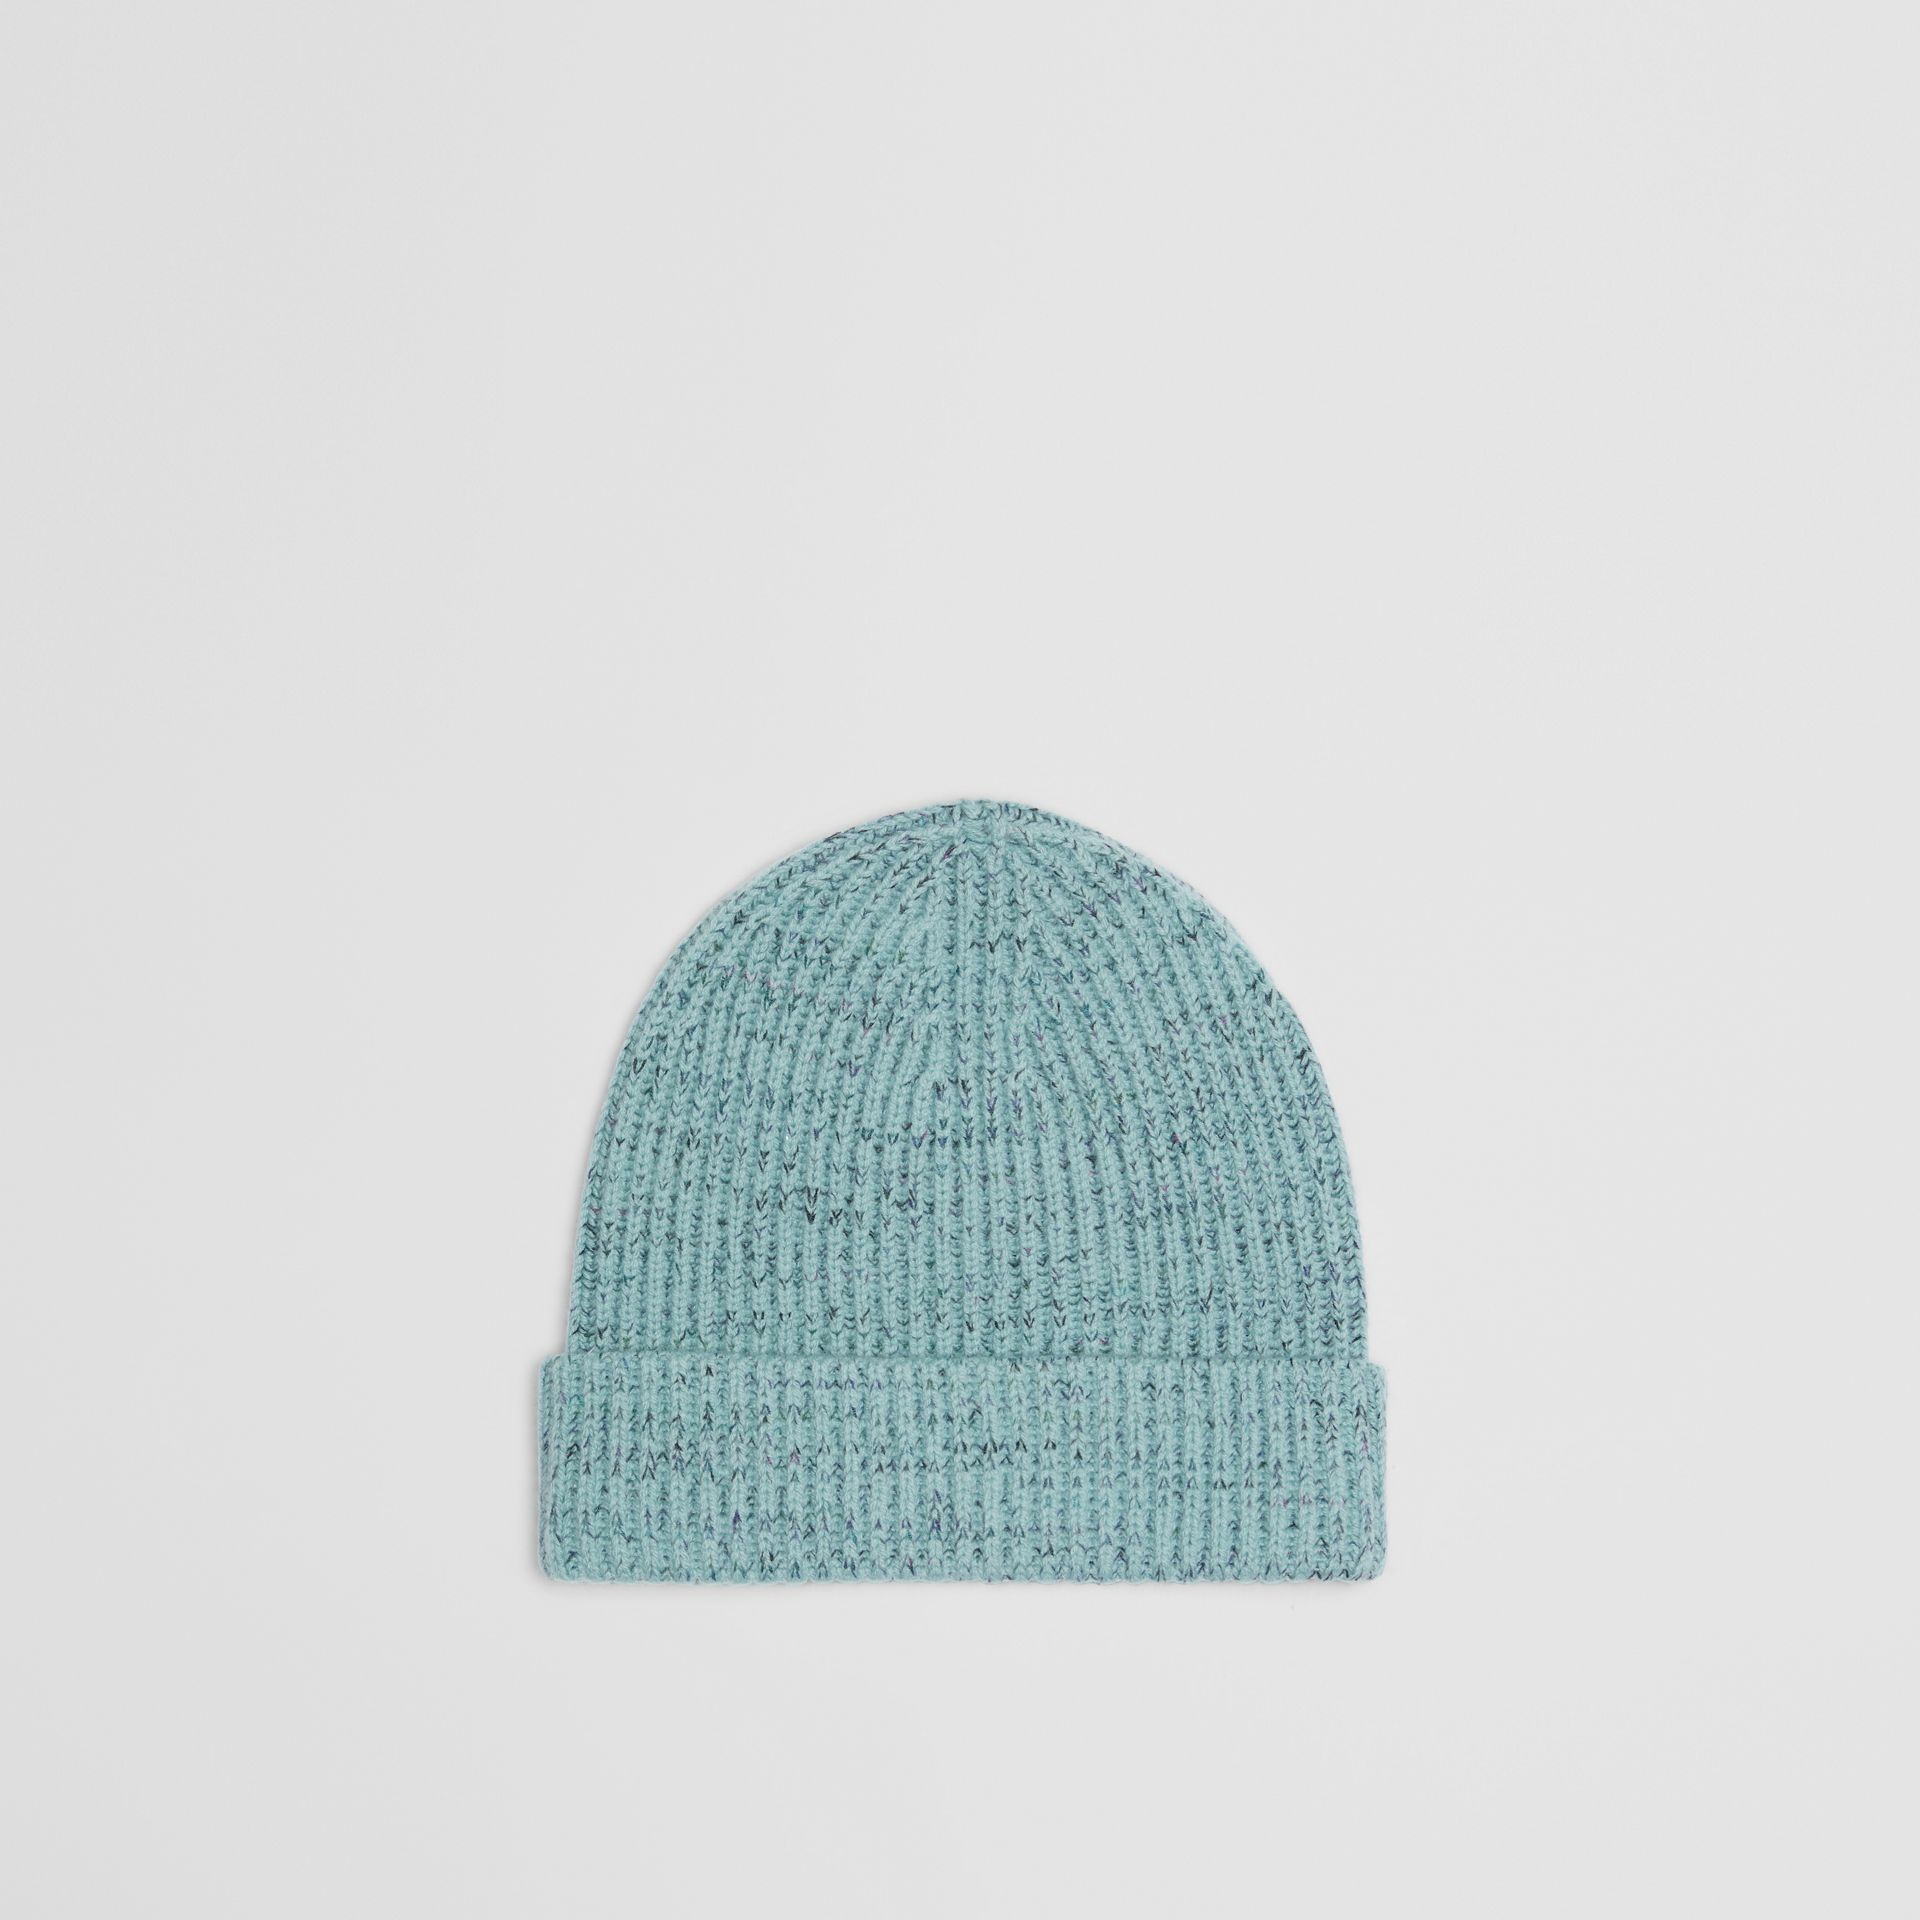 Embroidered Archive Logo Wool Blend Beanie in Blue Topaz | Burberry United Kingdom - gallery image 4